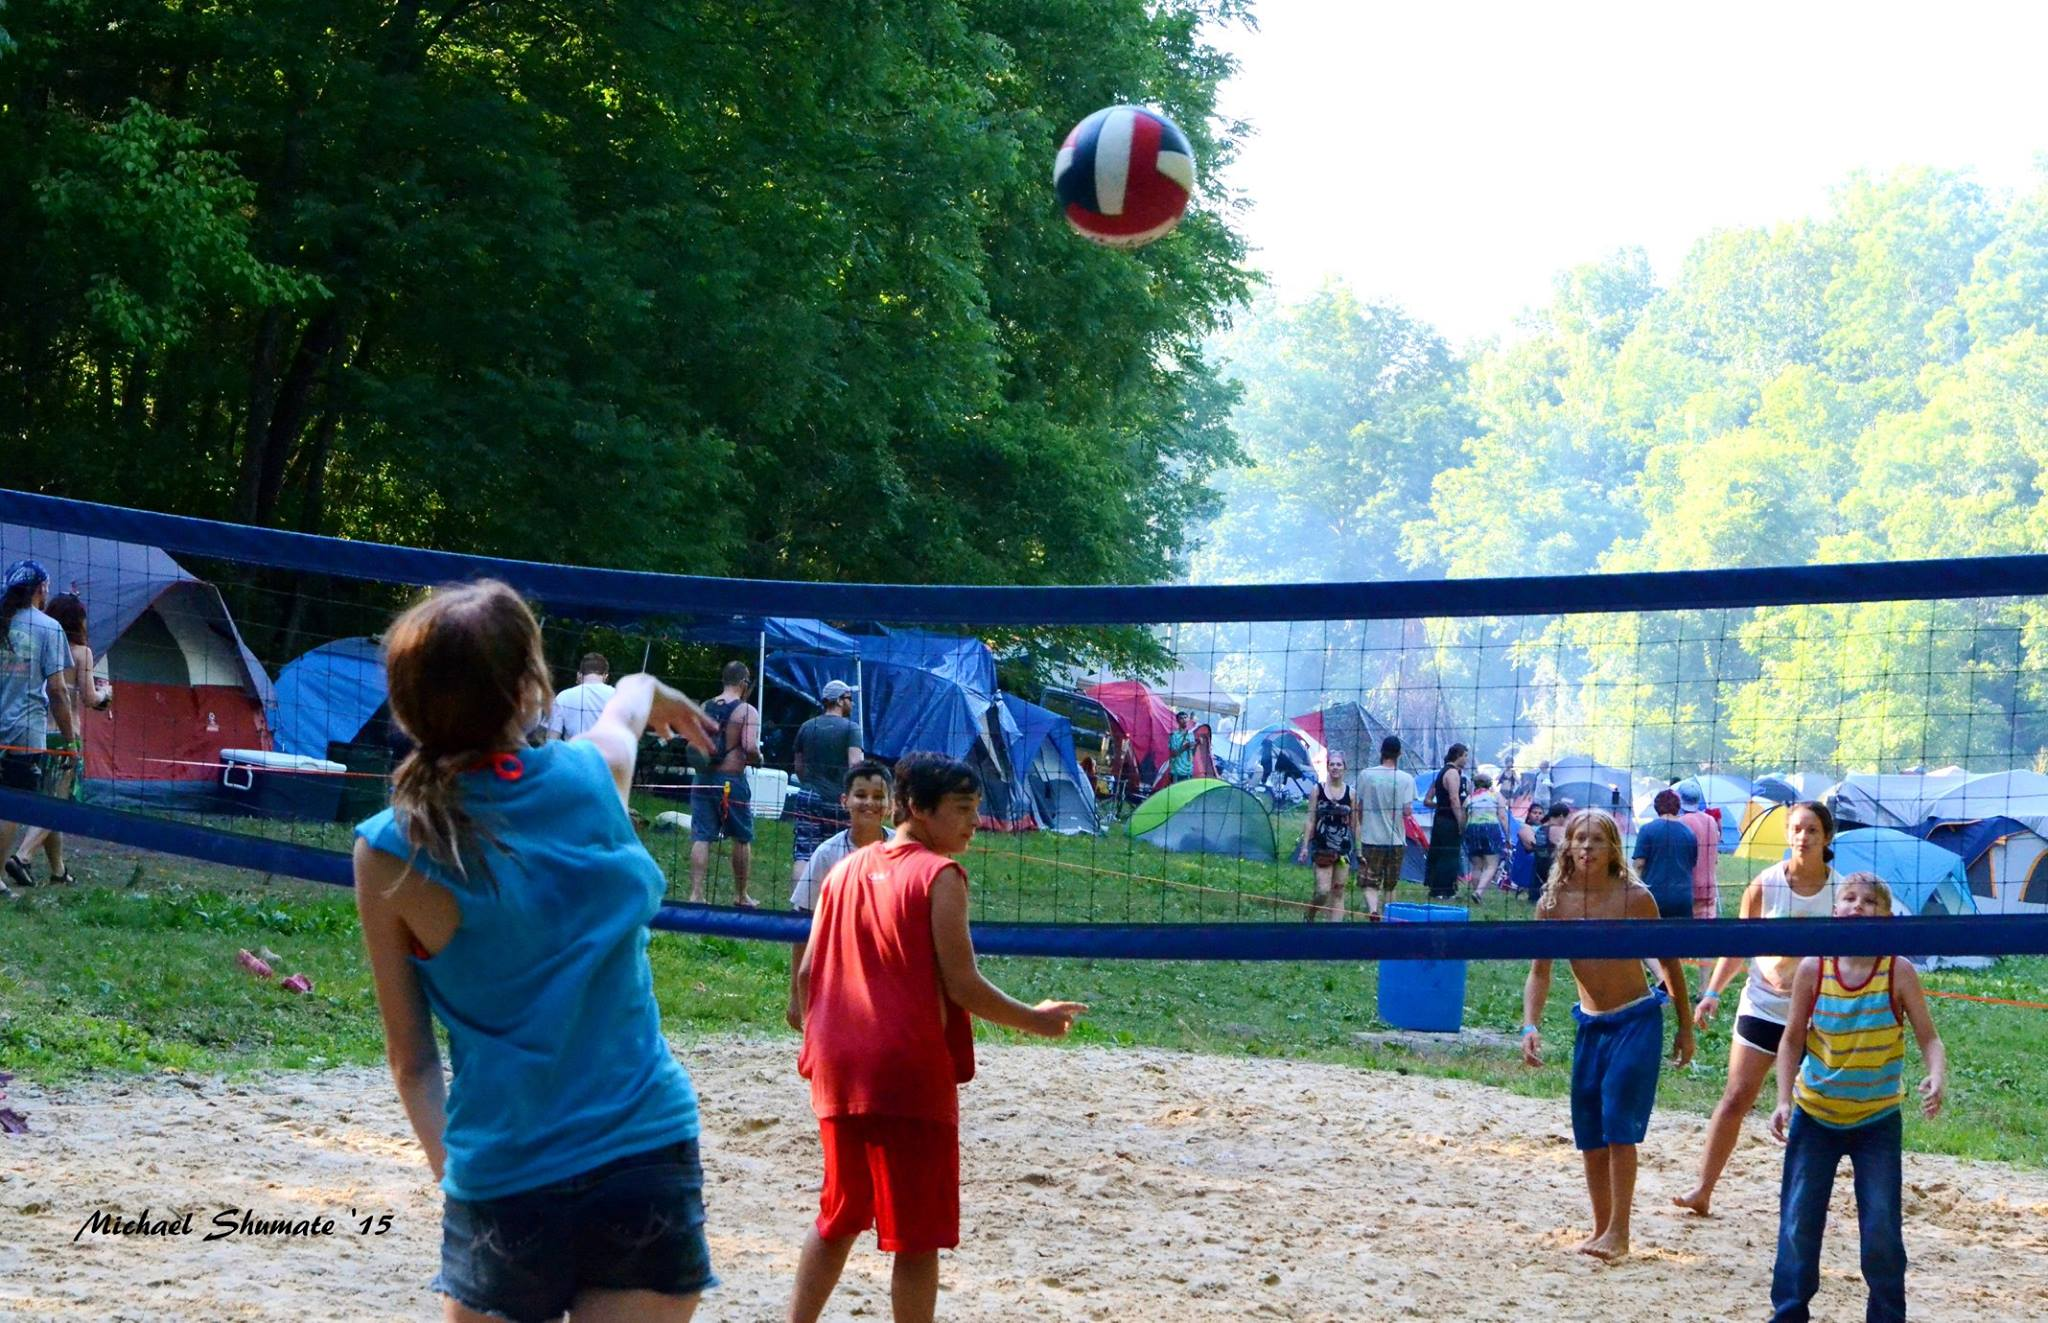 volleyball, children, kids, music festival